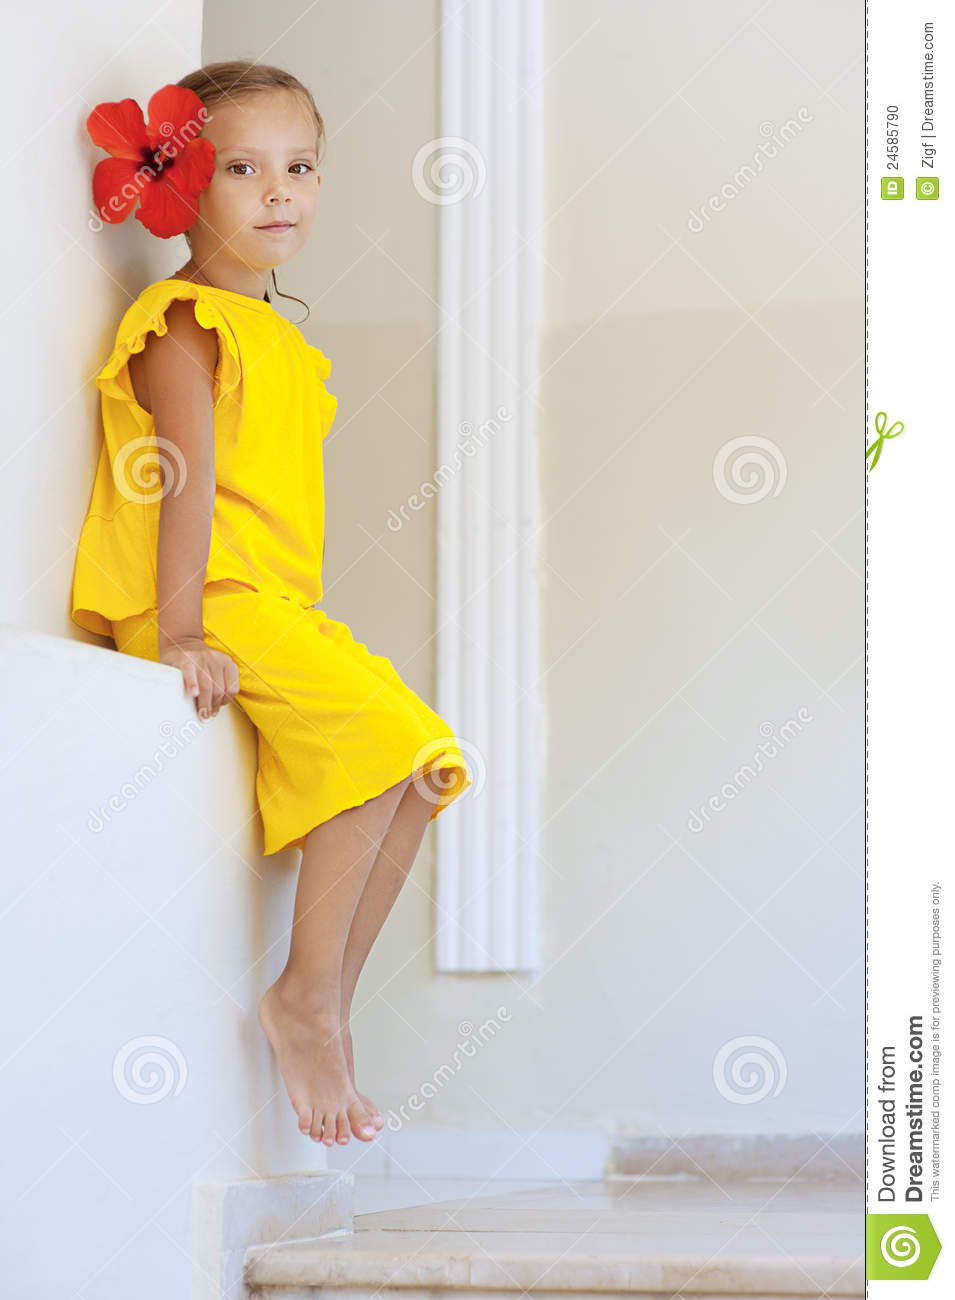 Yellow dress girl images